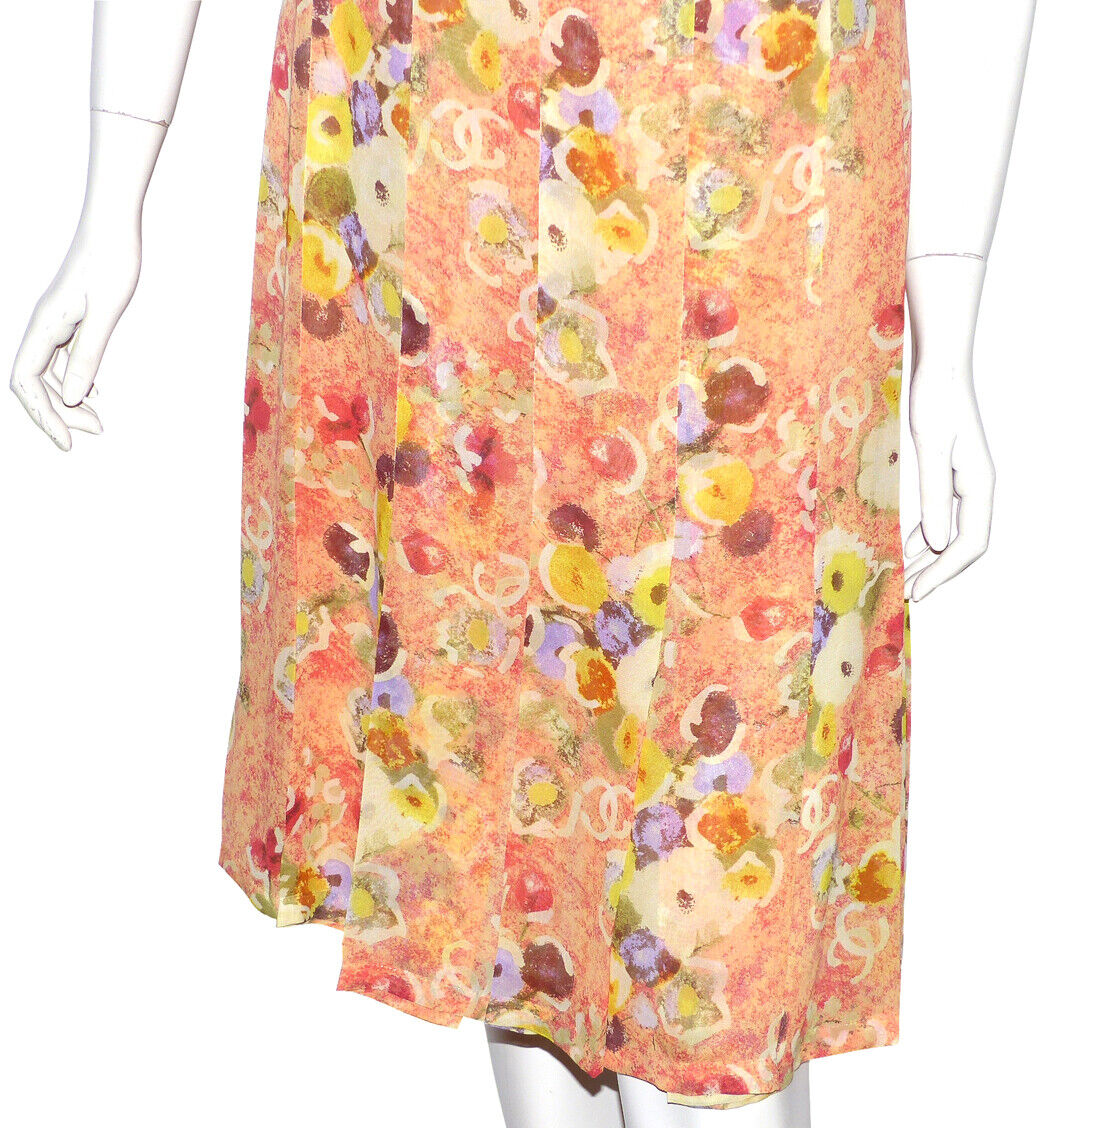 Chanel - robe en soie orange imprimÉ fleurs cc - silk dress chanel